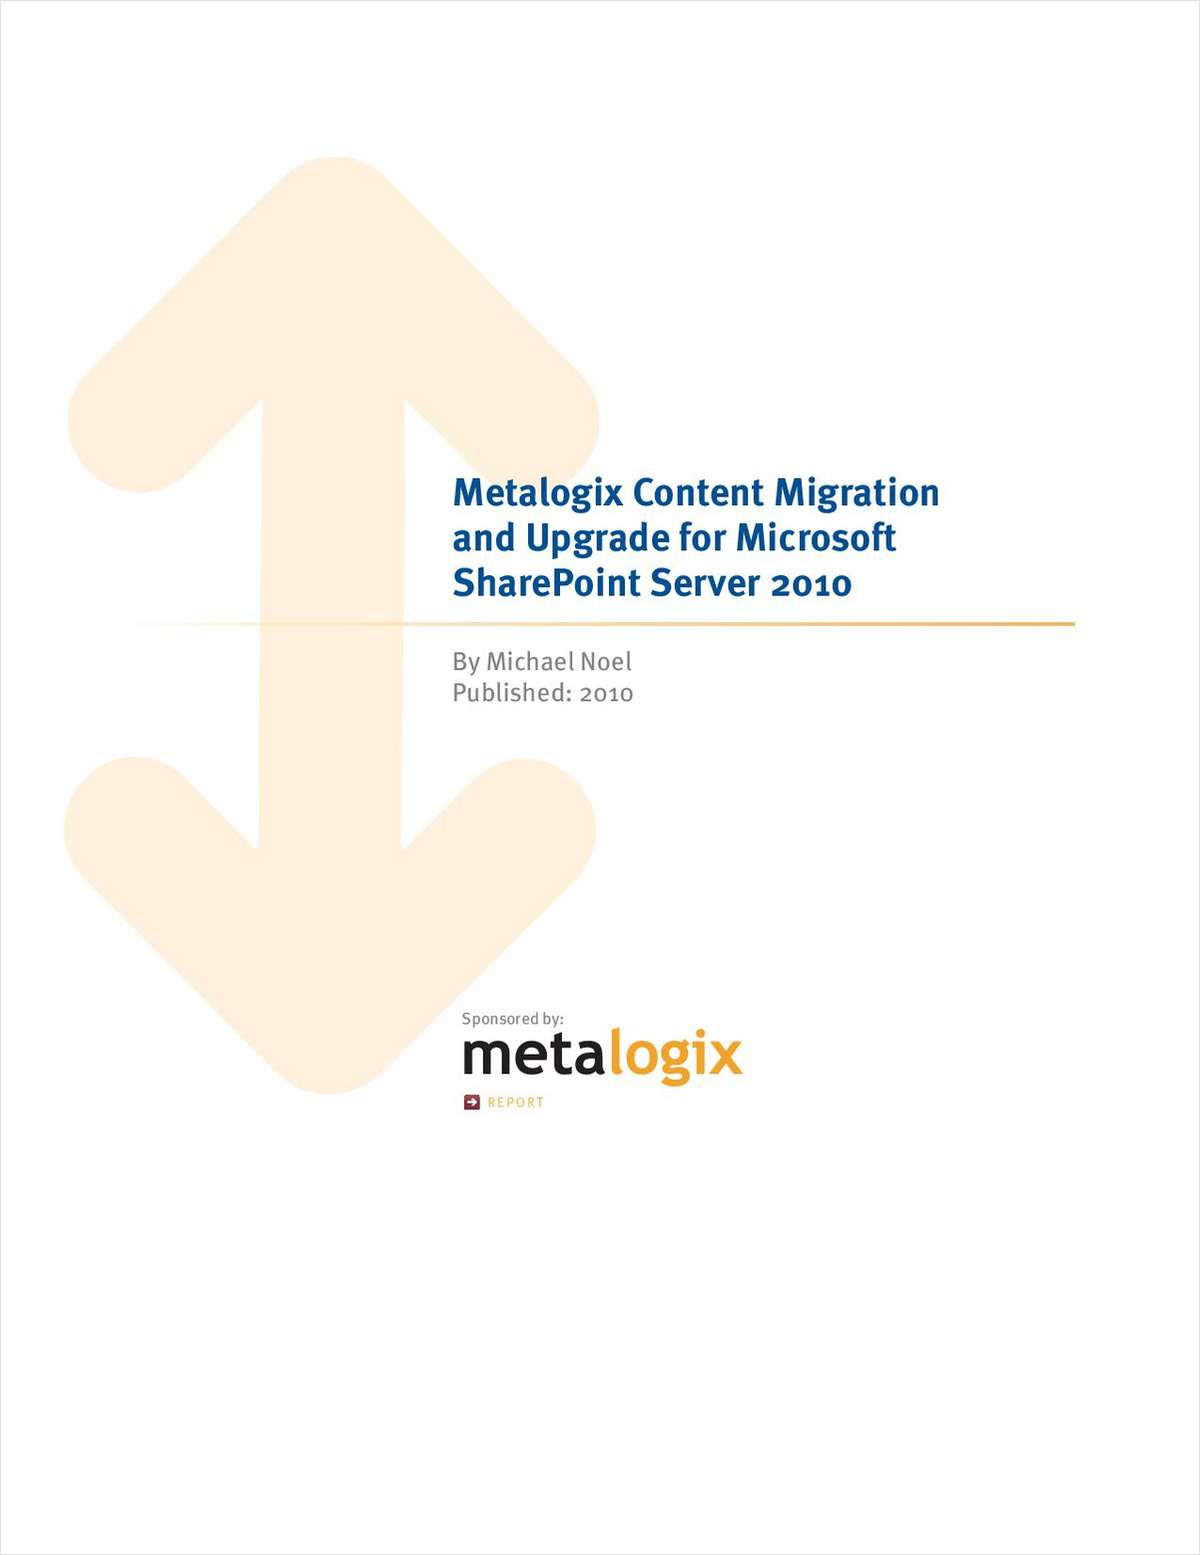 Planning a Migration and Content Upgrade to Microsoft 2010